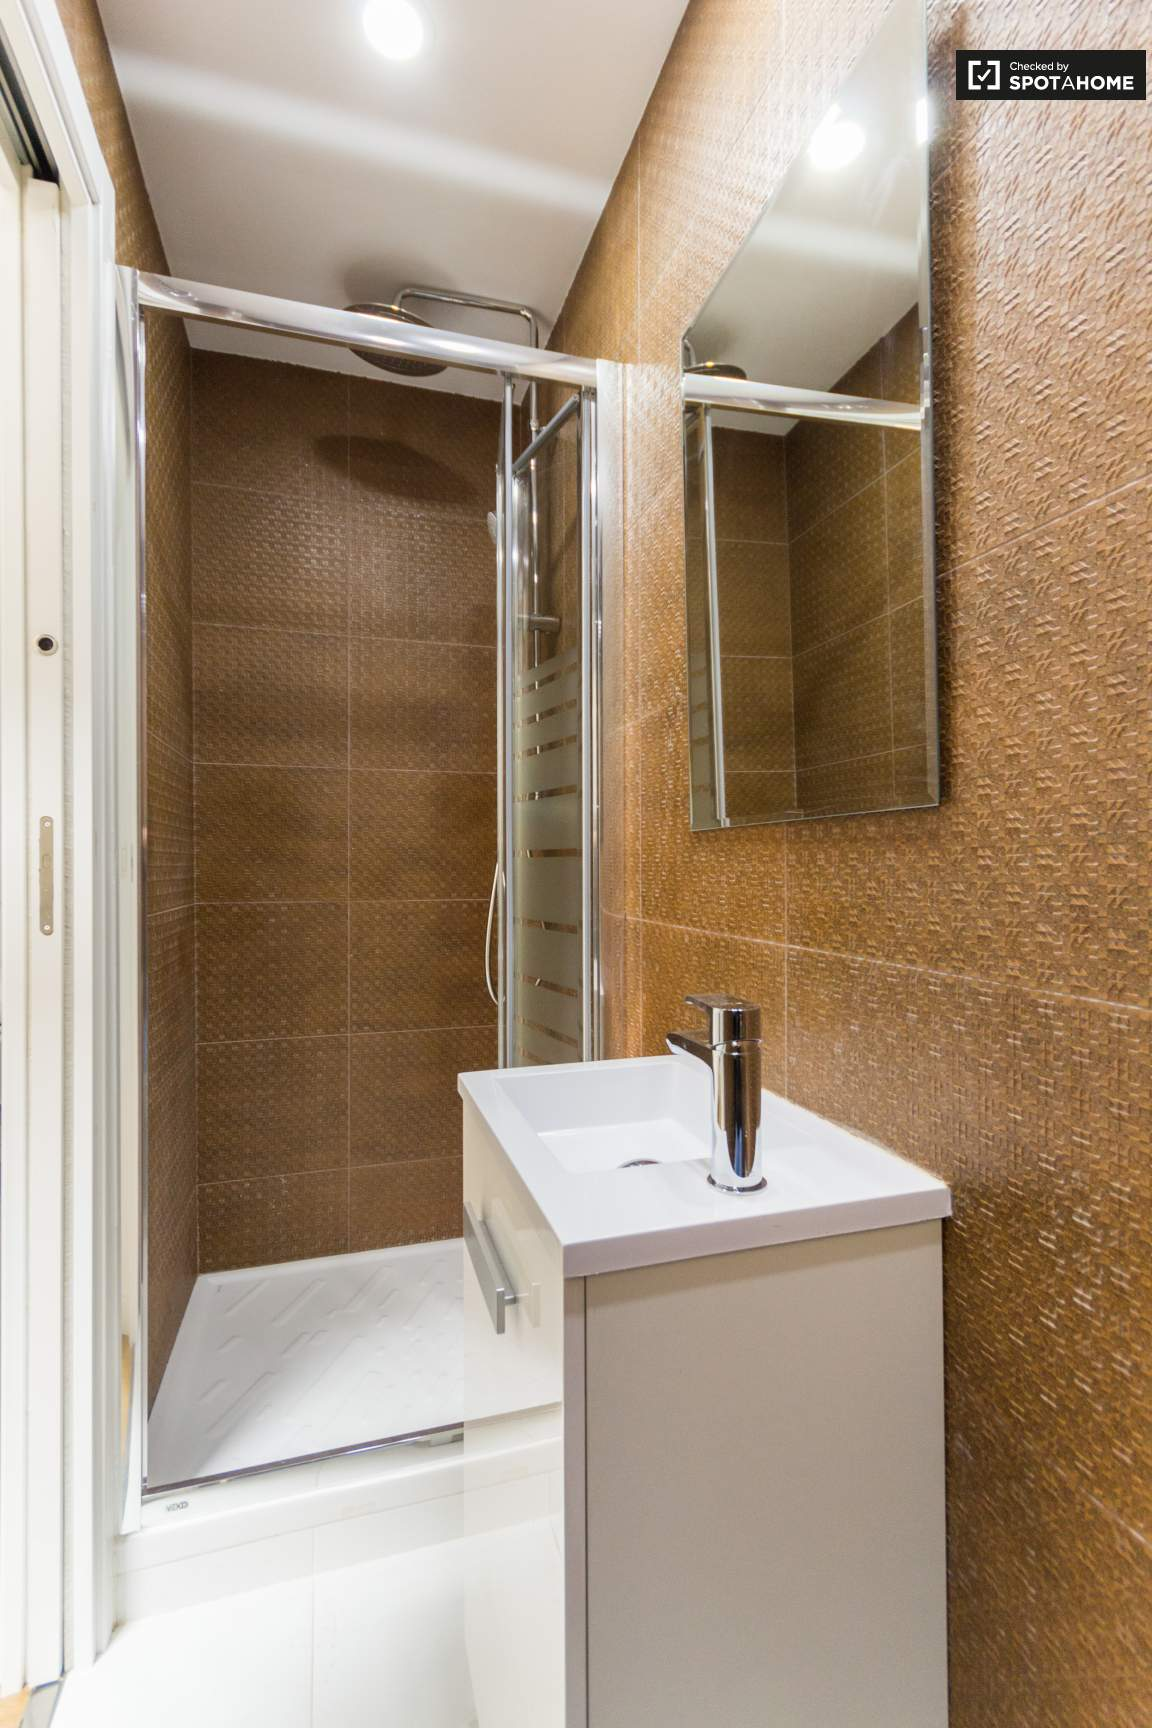 Ensuite bathroom (bedroom 3)